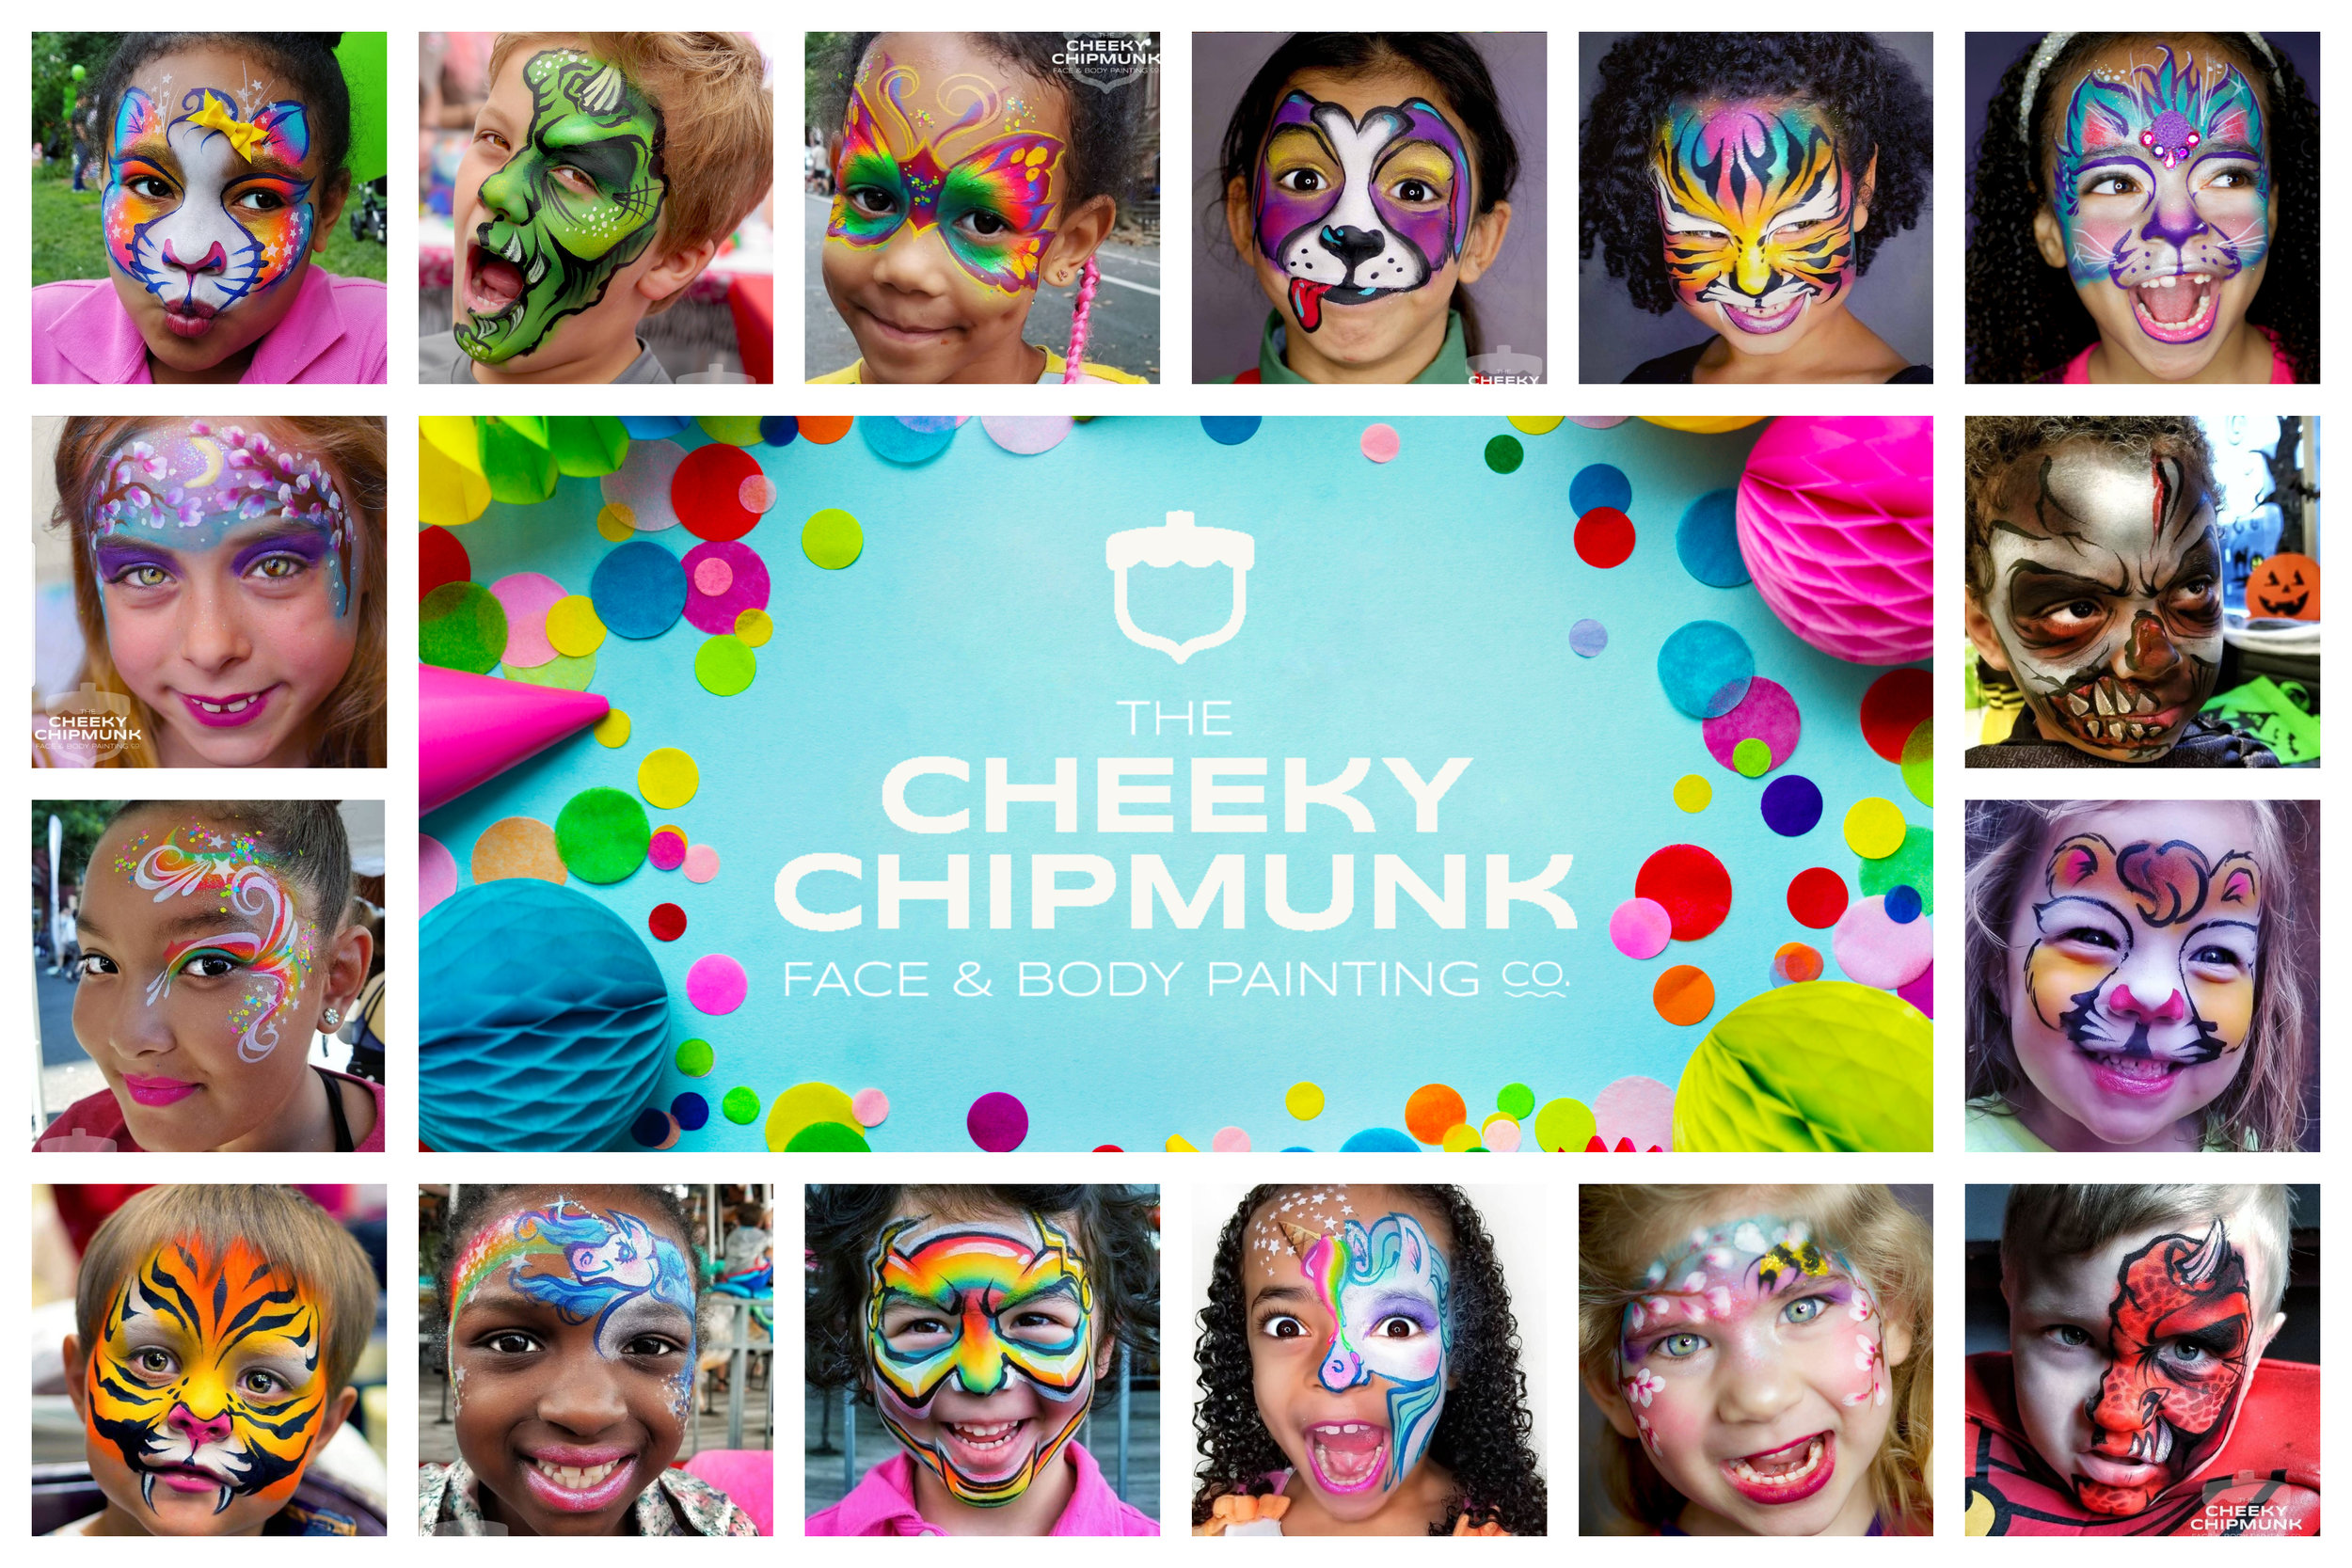 lenore-koppelman-the-cheeky-chipmunk-logo-collage-on-blue-party-background-confetti